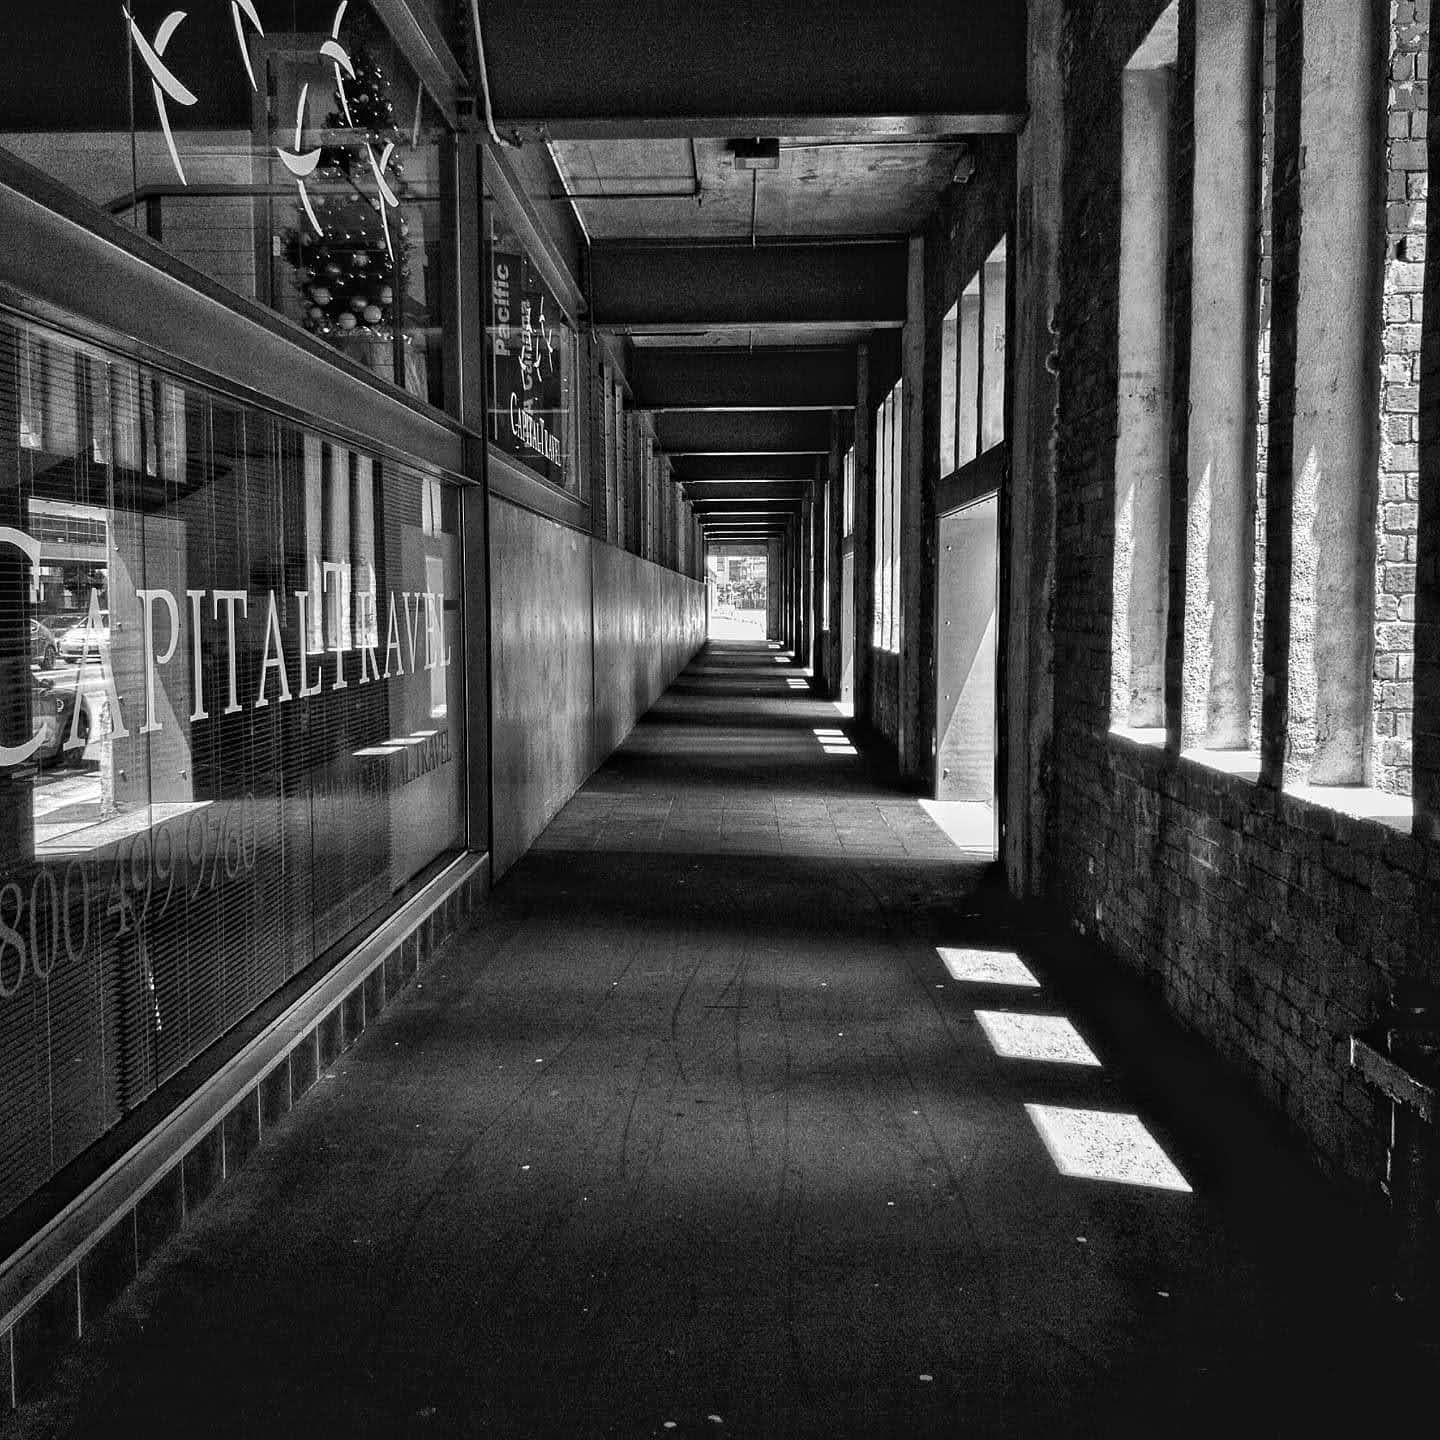 Black and white picture of a corridor sidewalk with decrepit walls on the right and under construction shops on the left